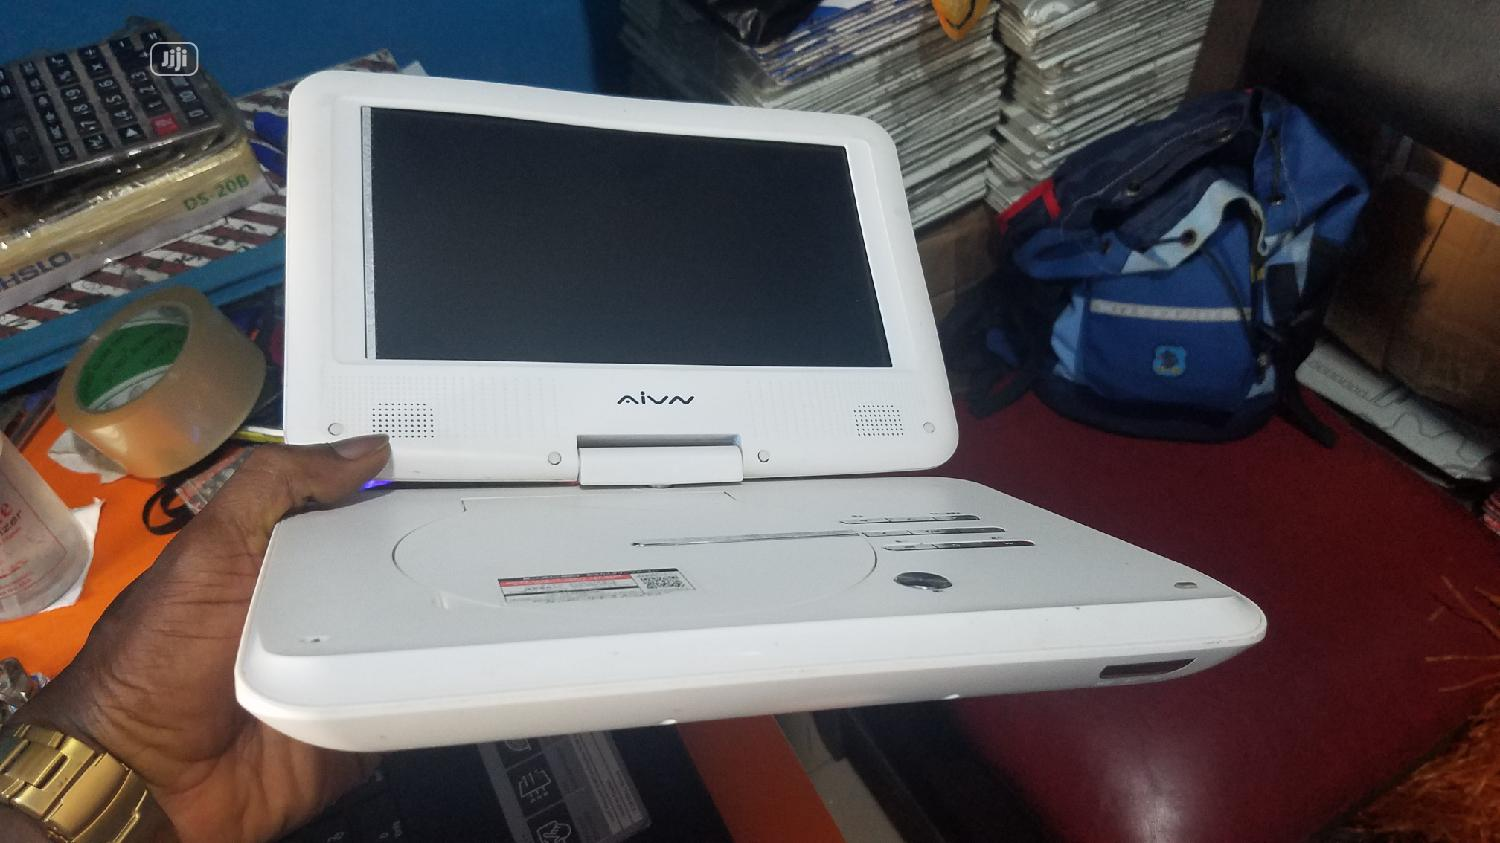 PORTABLE DVD PLAYER With Laptop Display Screen